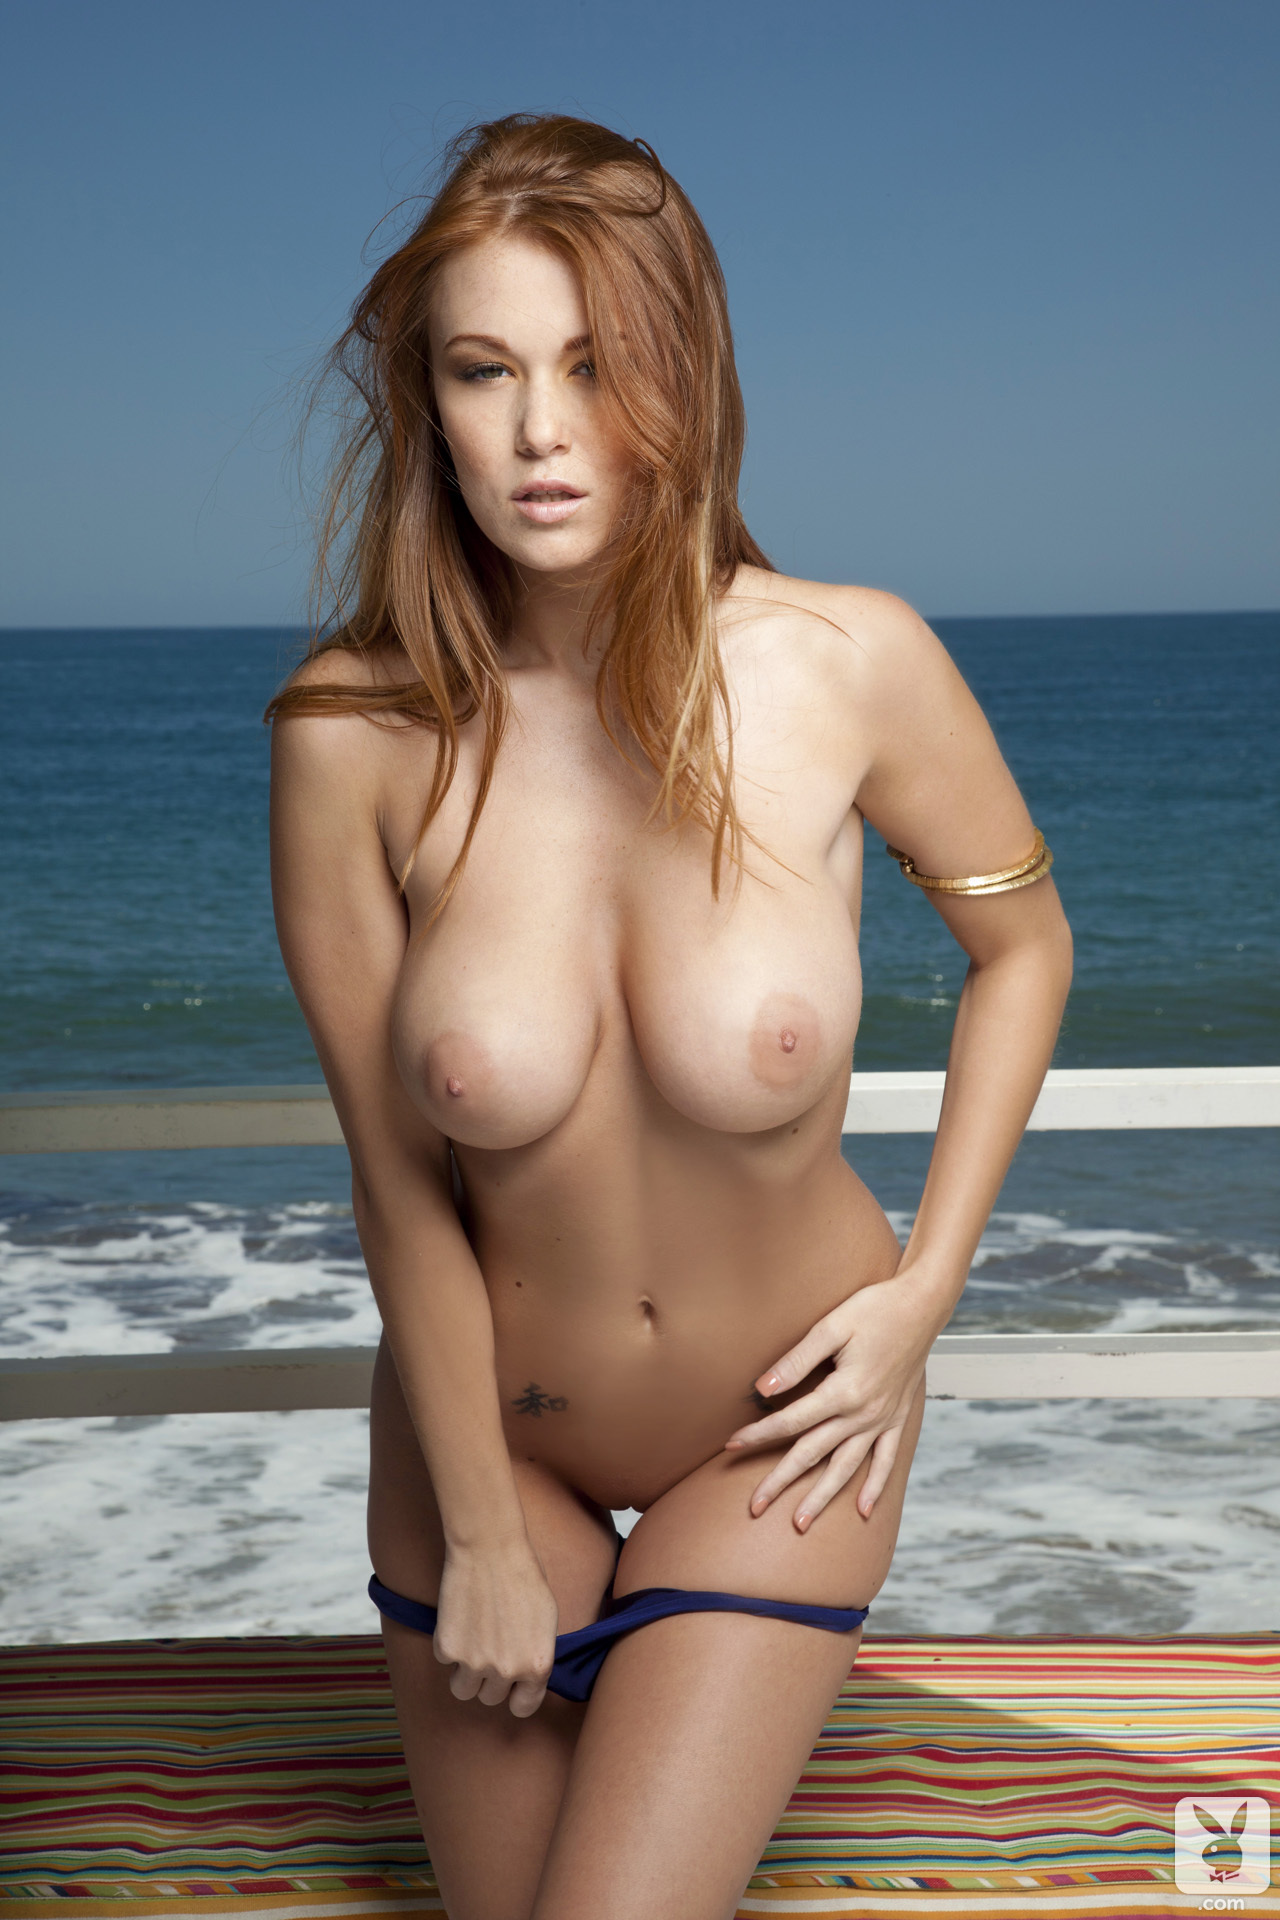 leanna-decker-bikini-boobs-redhead-seaside-playboy-15